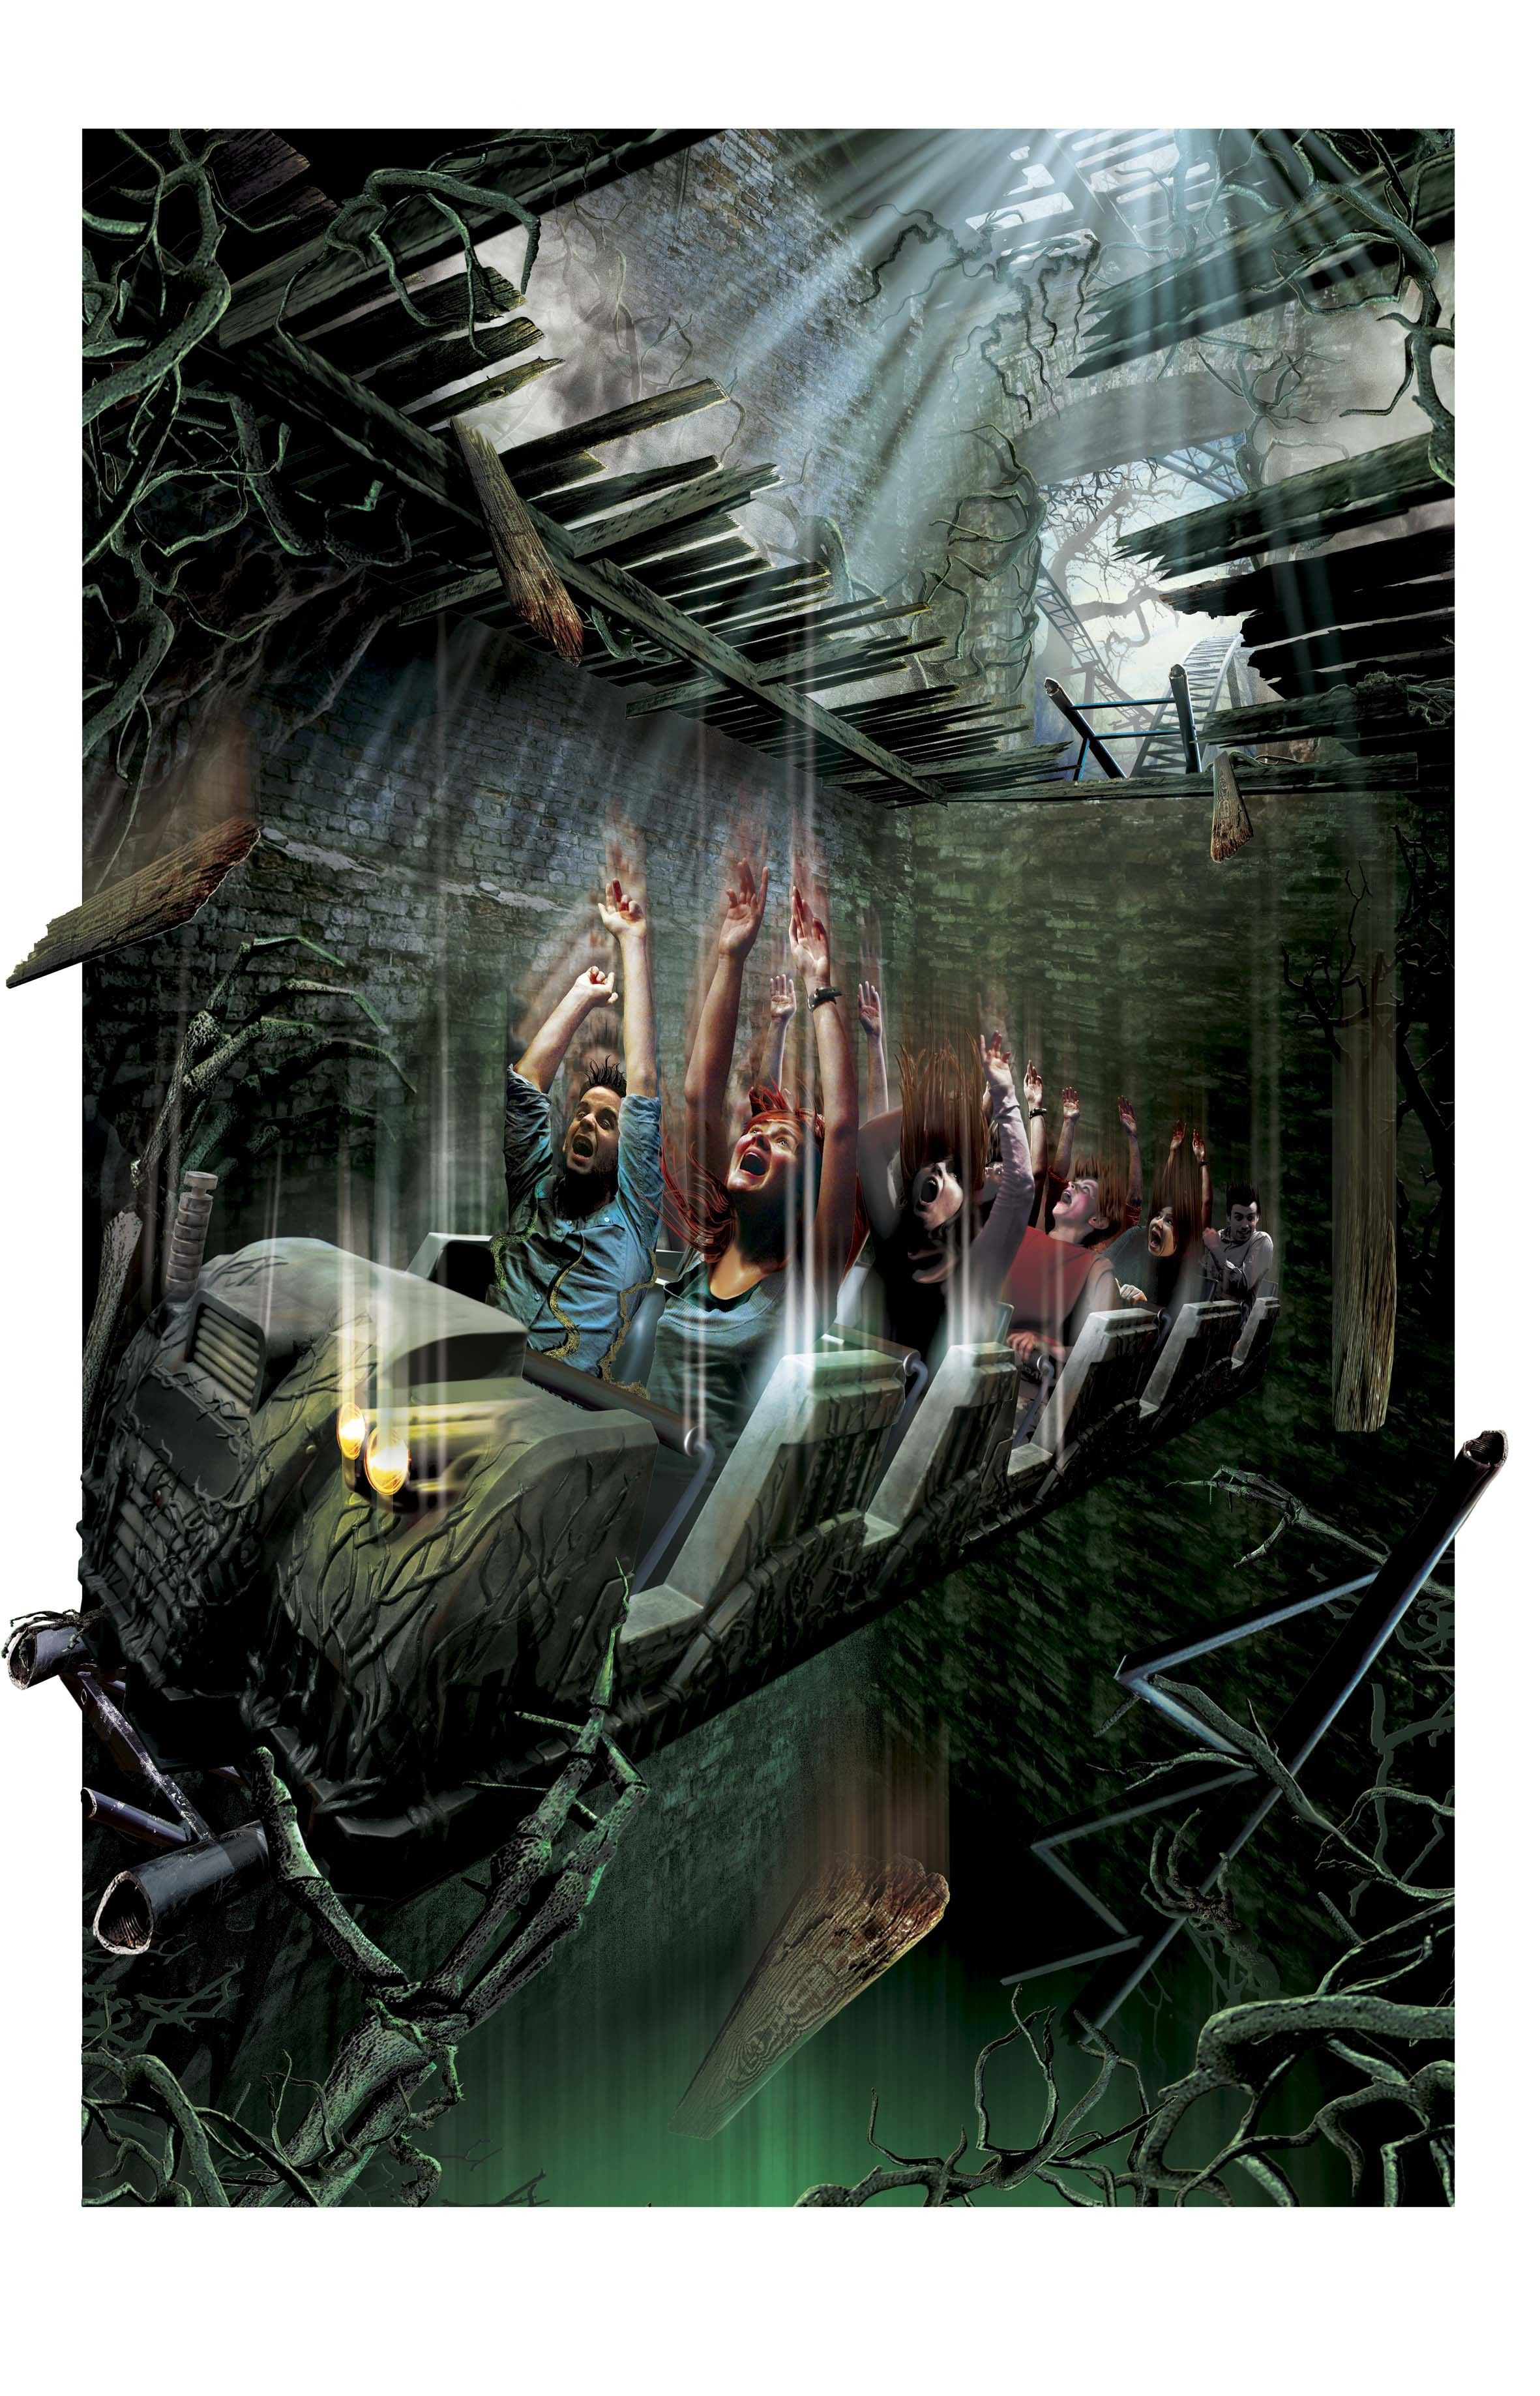 Alton Towers Wicker Man Gci Wood Forums